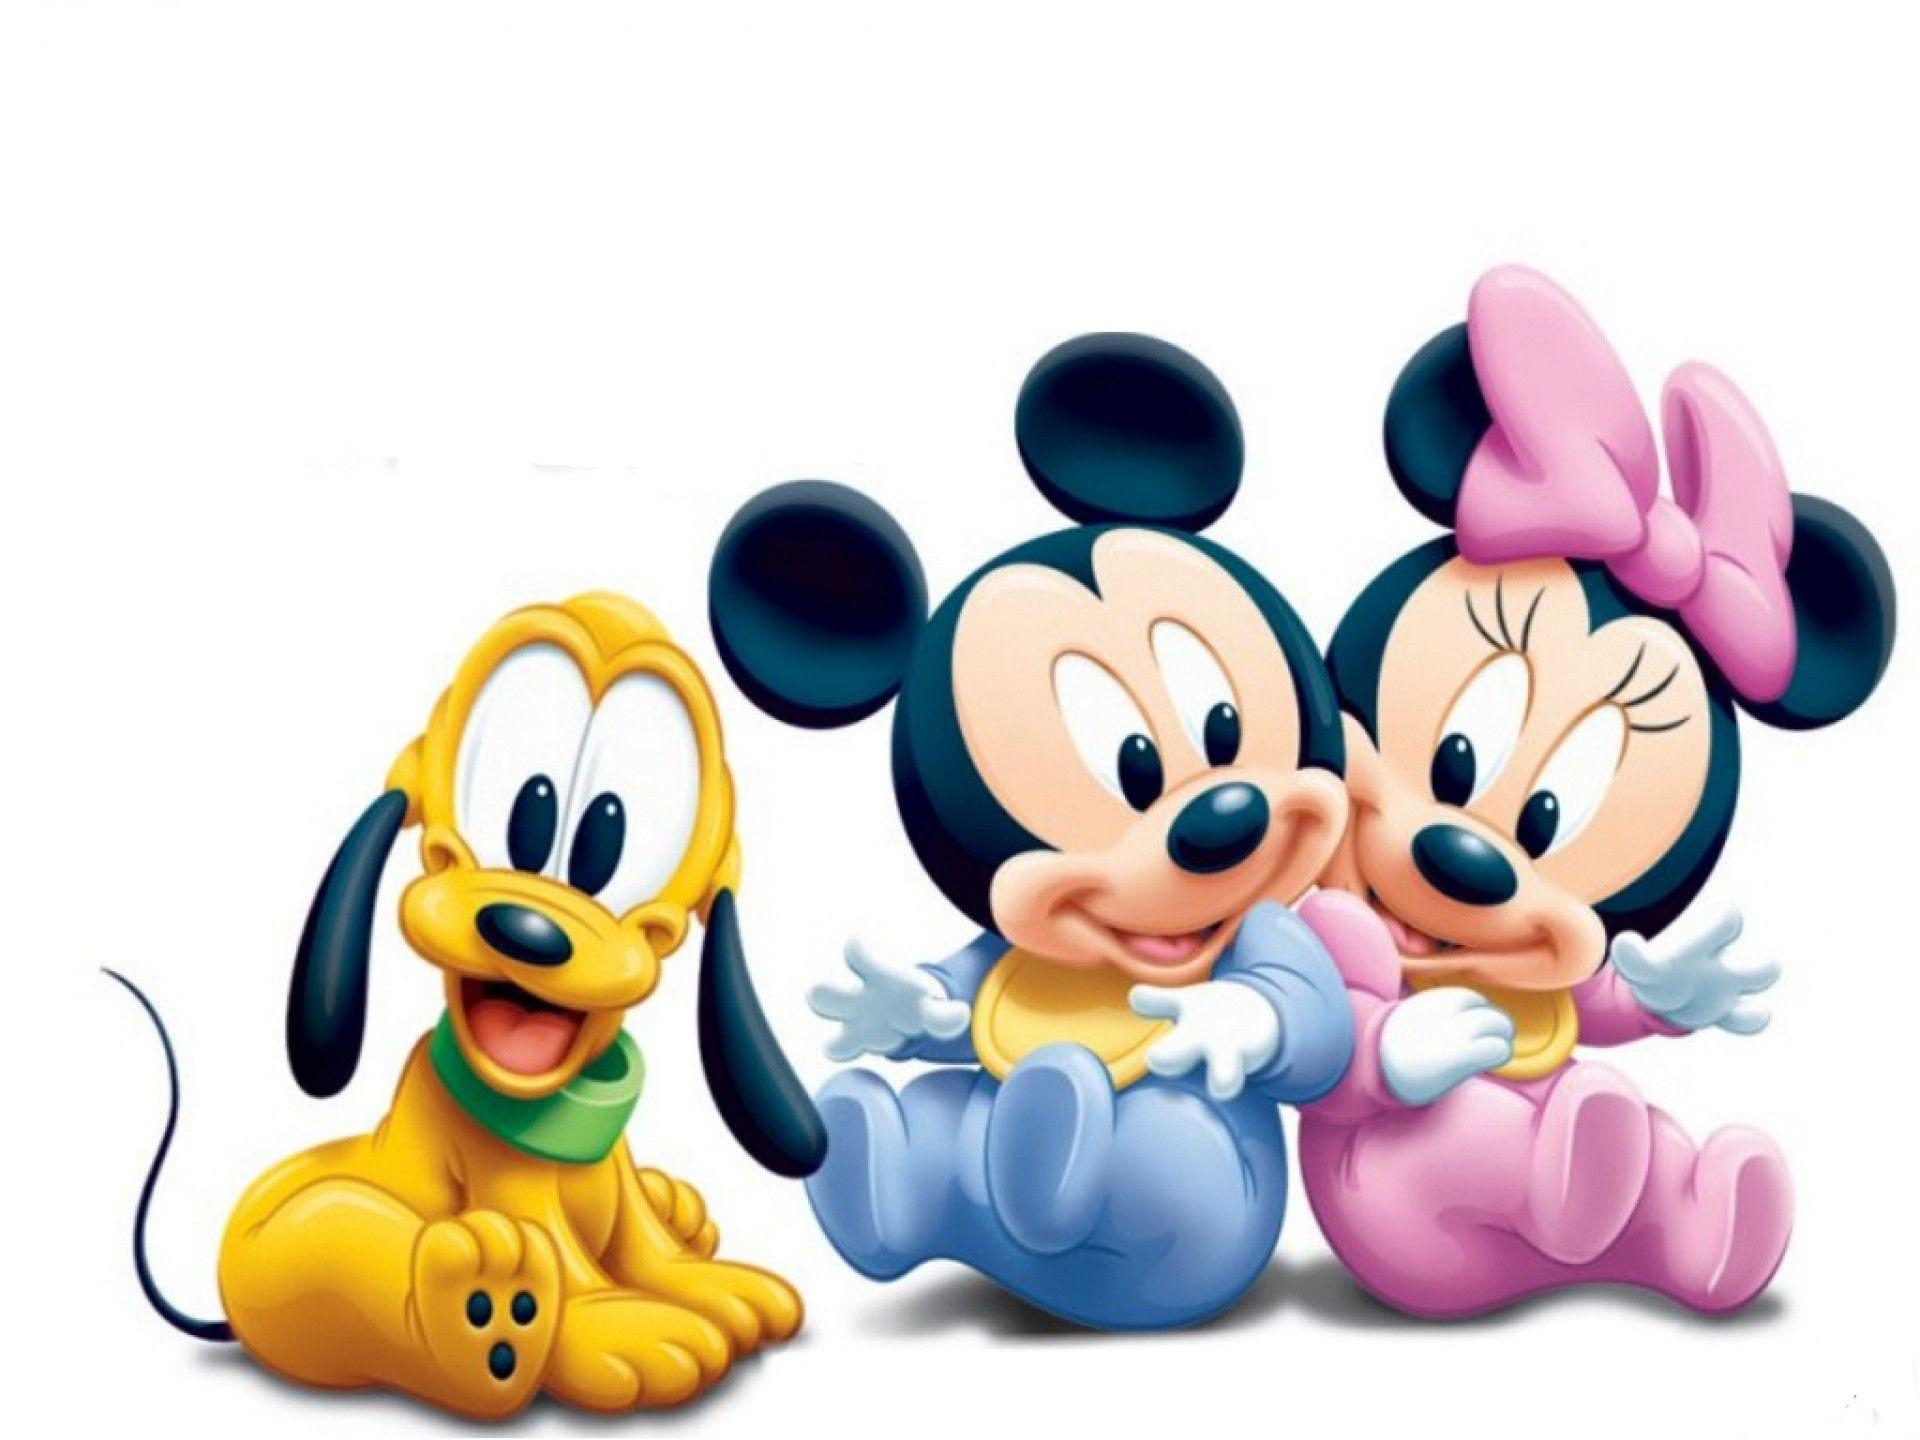 Mickey and minnie mouse wallpapers wallpaper cave - Minni et mickey ...